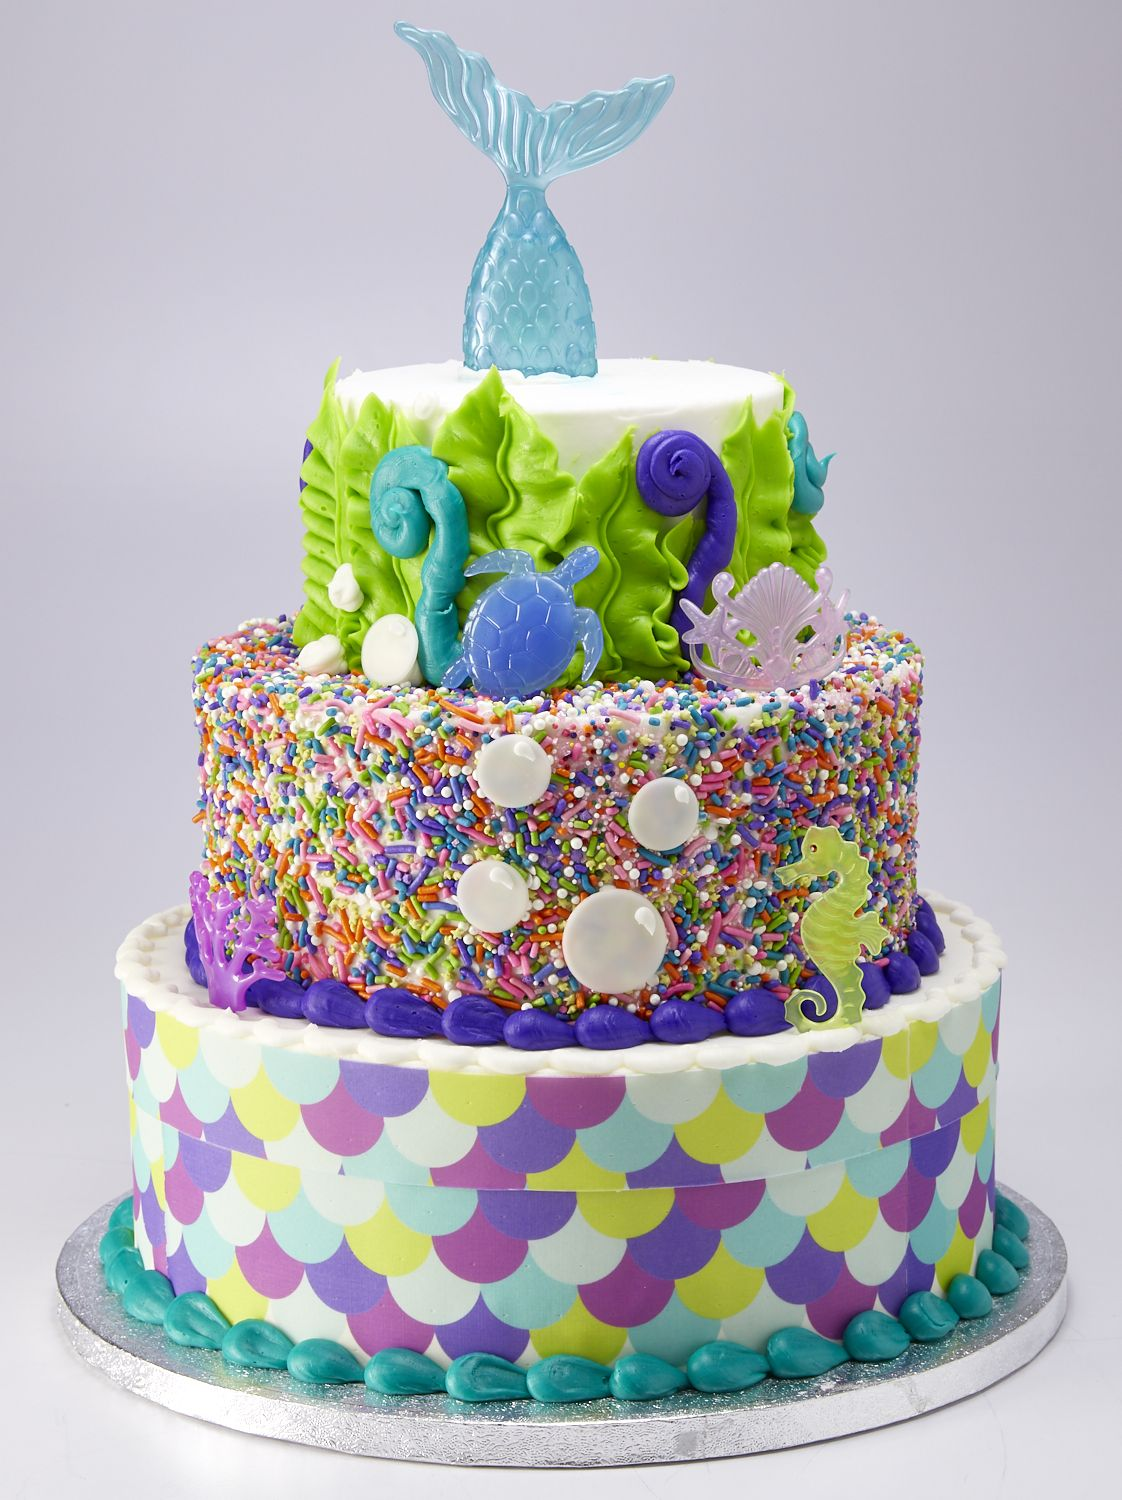 You Can Get A 3 Tier Mermaid Cake At Sam S Club For Less Than 70